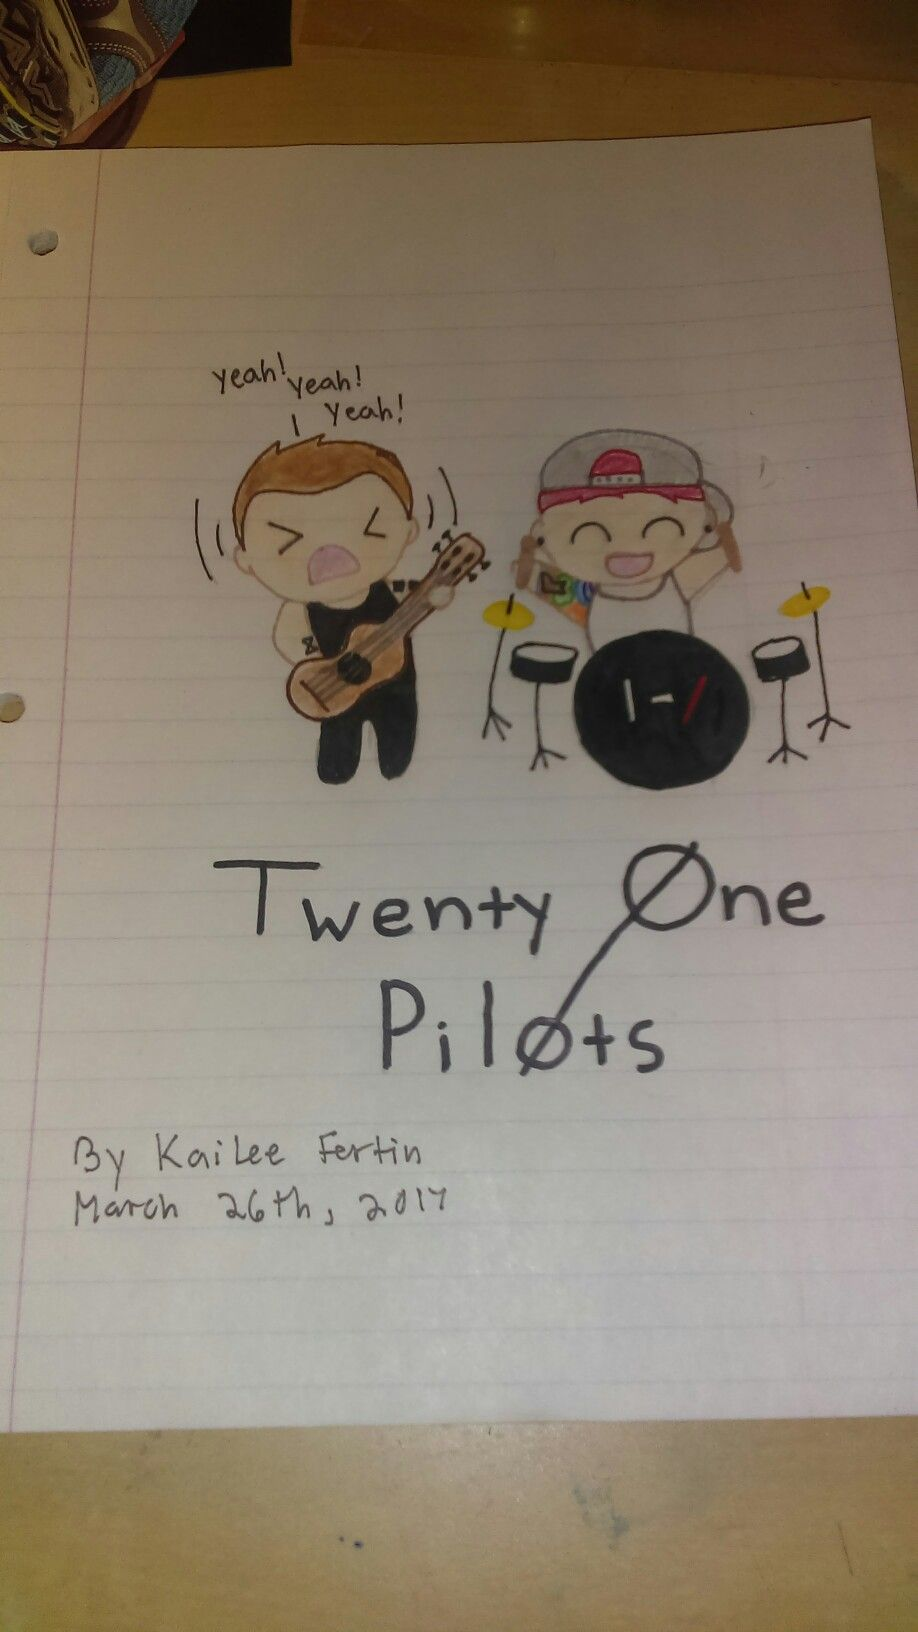 Pretty much twenty Øne piløts xd by kailee fortin my drawings